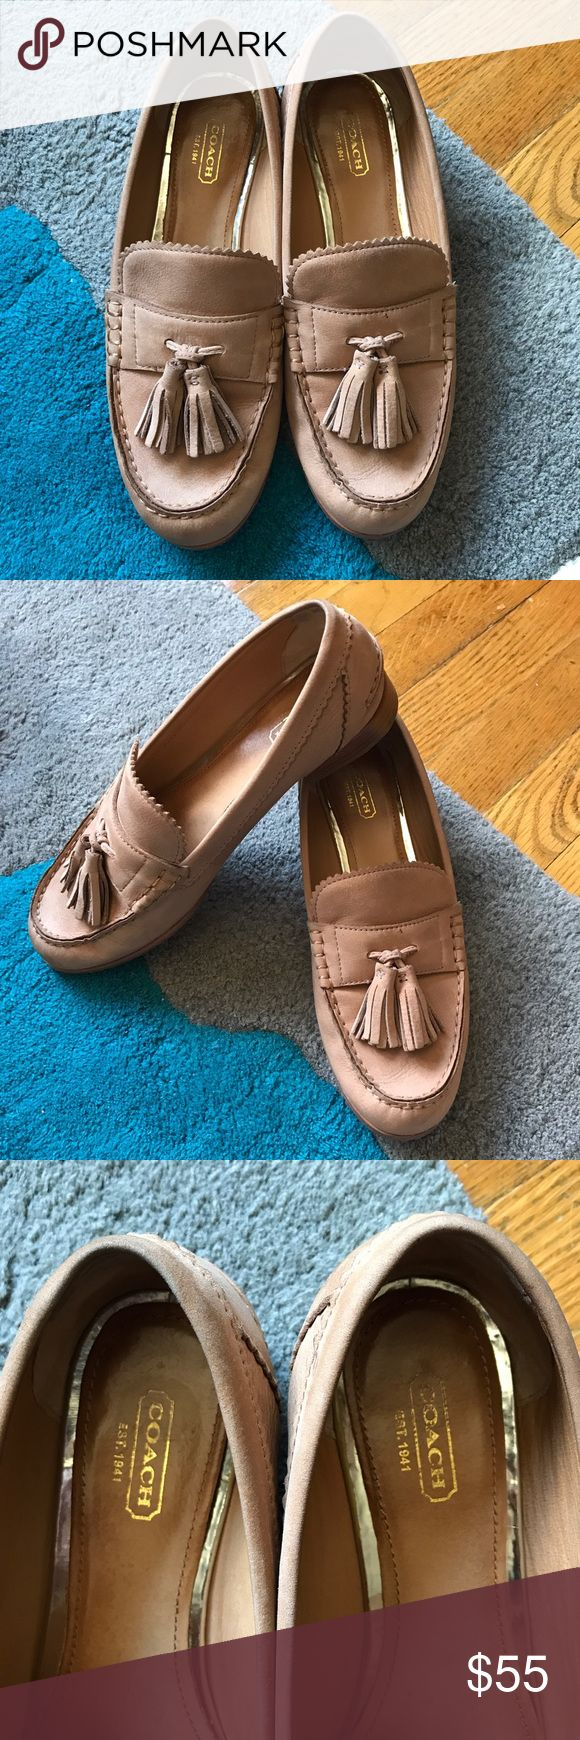 Coach Haydee Tan Loafer sz 8.5 Coach Haydee Tan Loafer sz 8.5 used twice in excellent condition (have been worn with socks) Beautiful penny loafer style with tassels and scalloped details. they have two small marks shown in last picture.  100% authentic. I do not sell inauthentic items of any sort and do not recommend purchasing inauthentic items.  NO TRADES NO LOWBALL OFFERS NO PAYPAL NO HOLDS items will not be modeled. Please ask questions only if interested in purchasing. All items come…